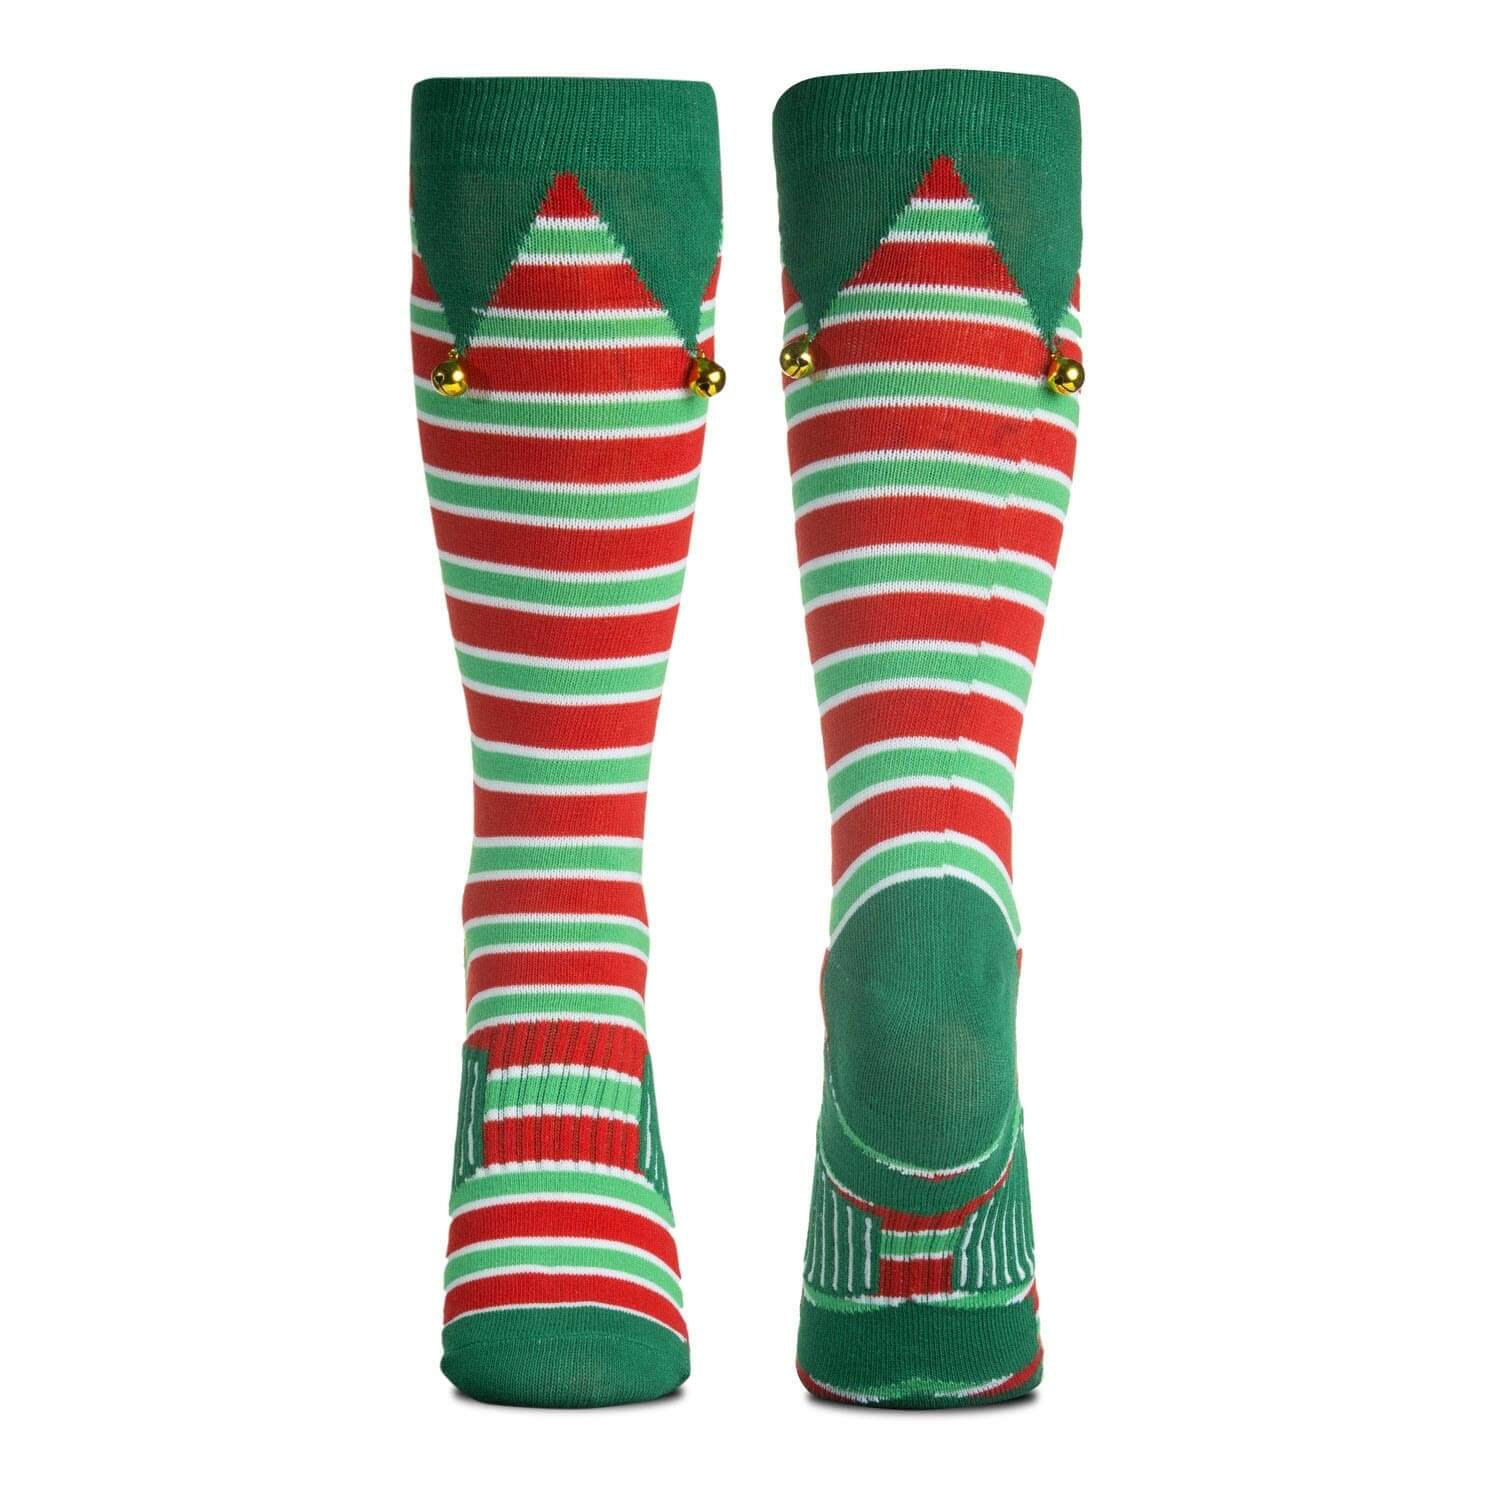 Socrates® Mid-Calf Performance Socks - Jingle Bell